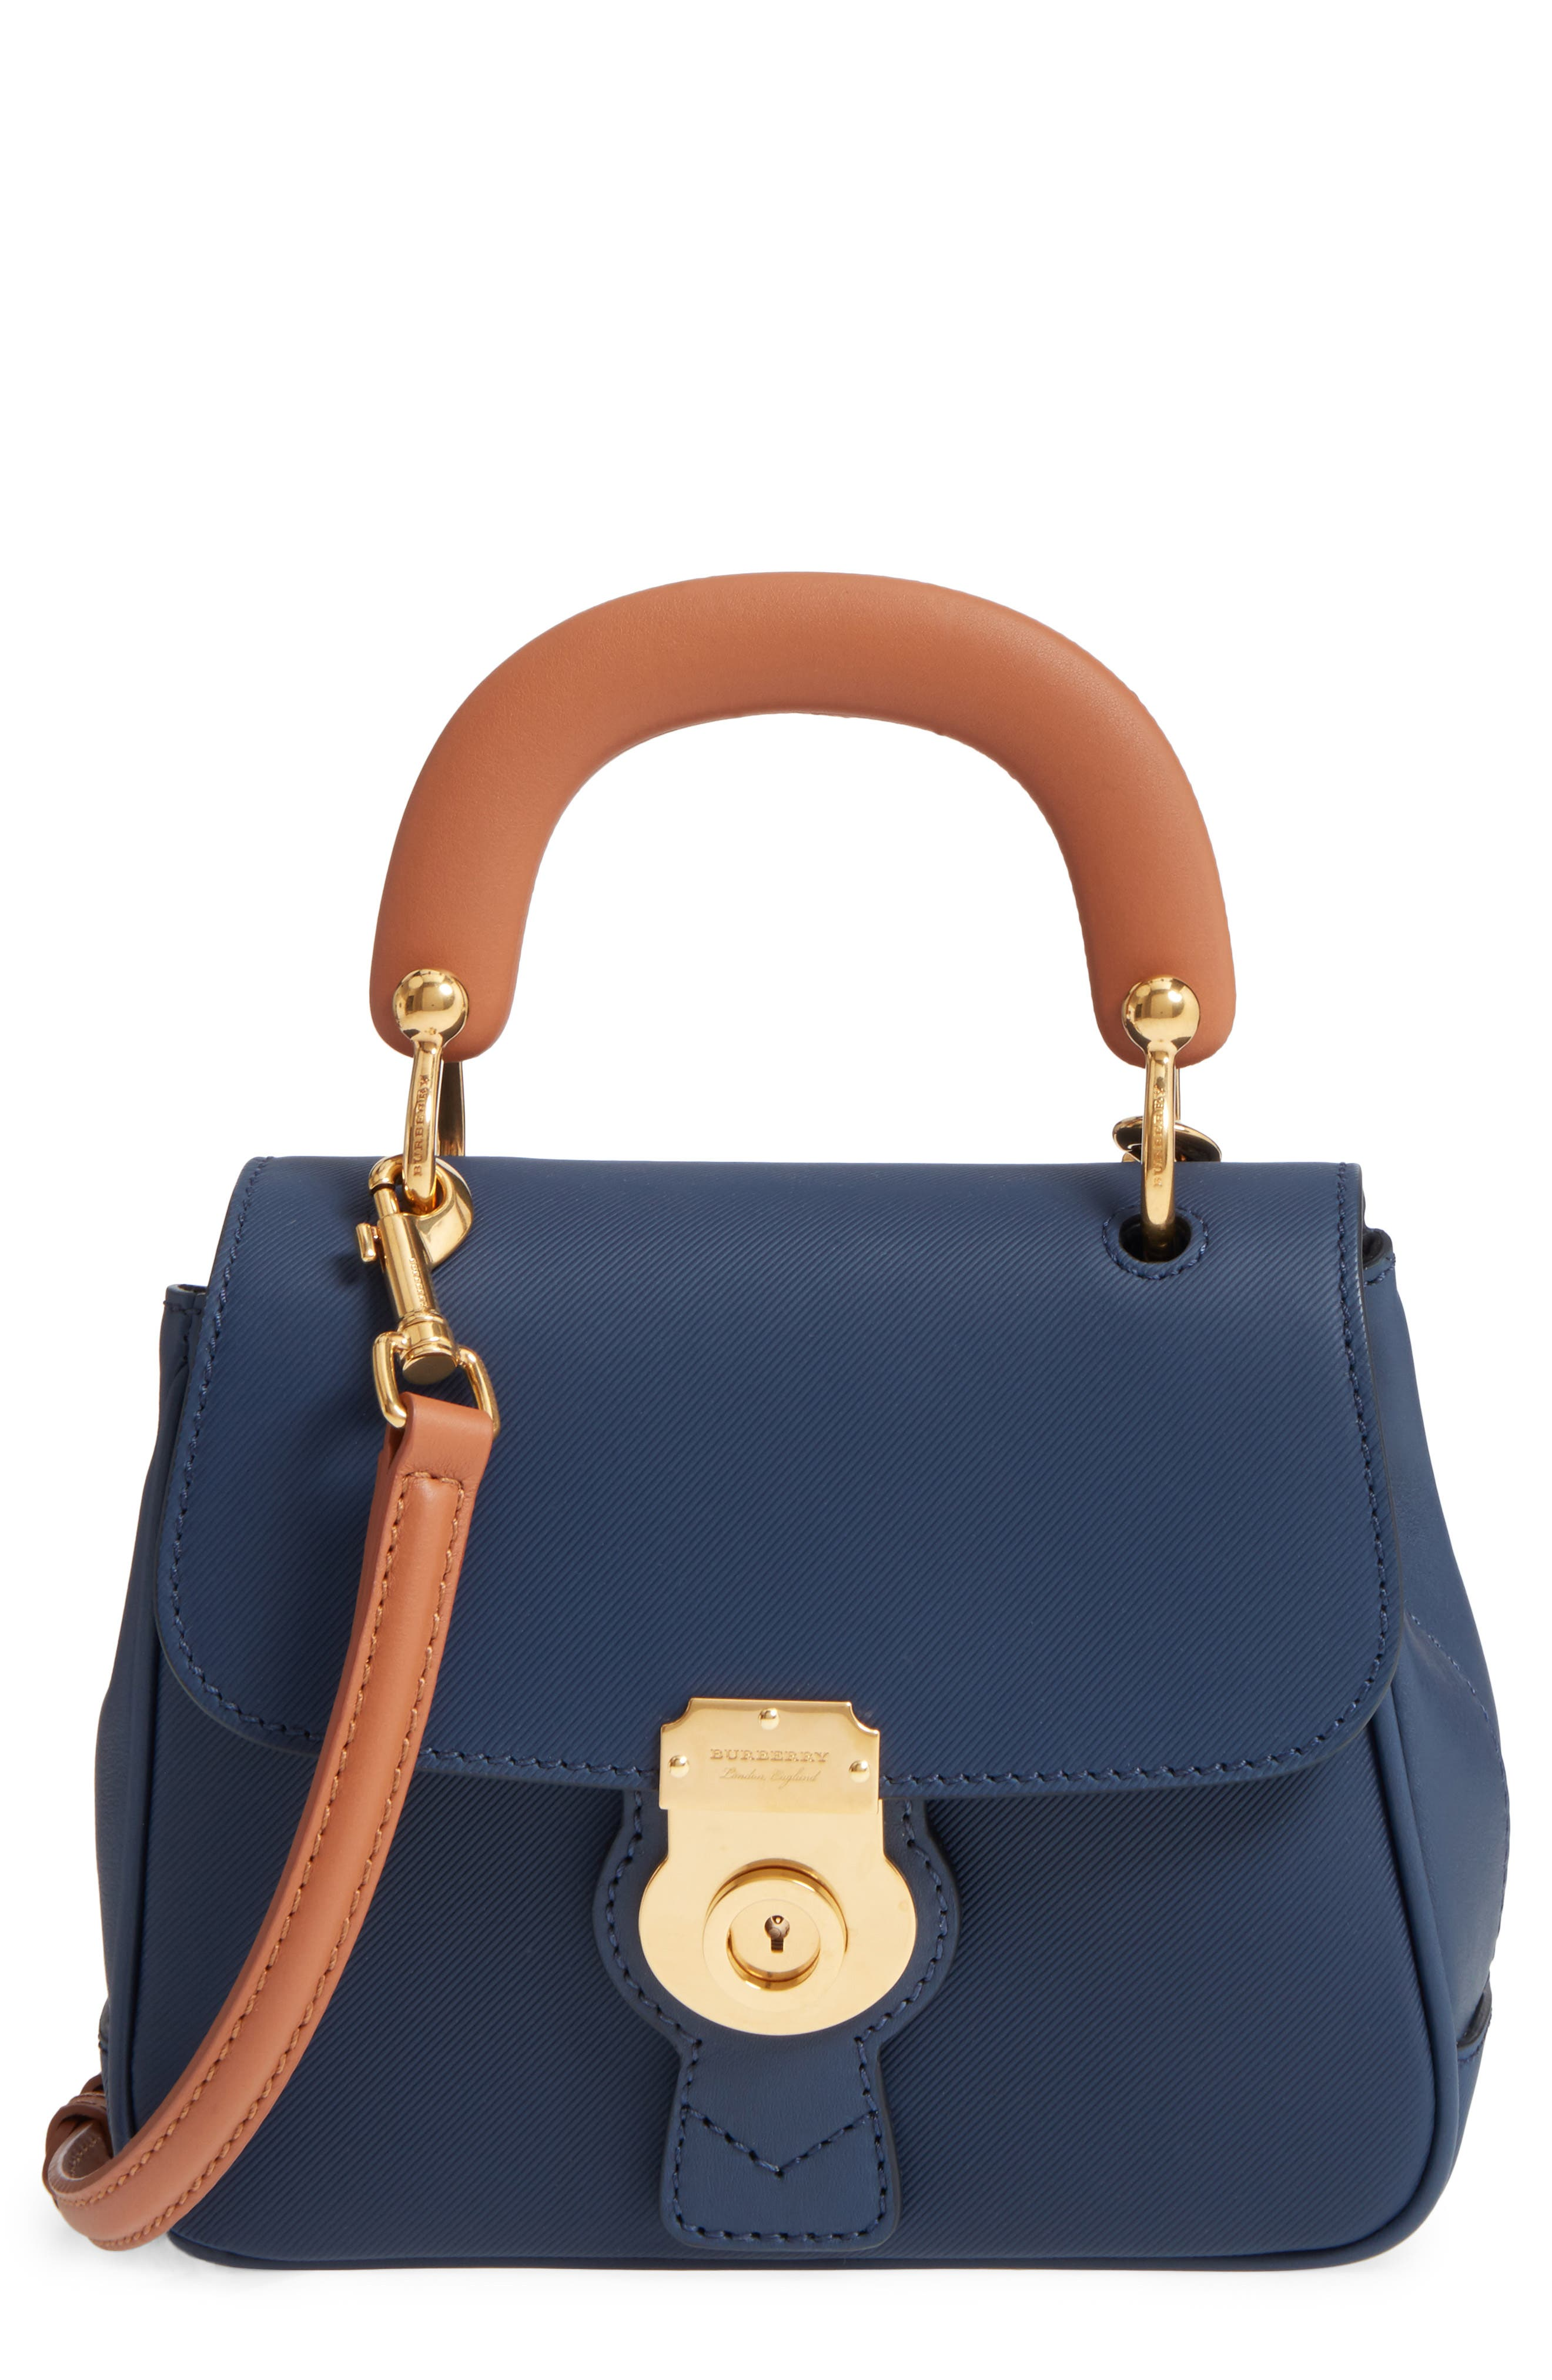 Alternate Image 1 Selected - Burberry Medium DK88 Leather Satchel